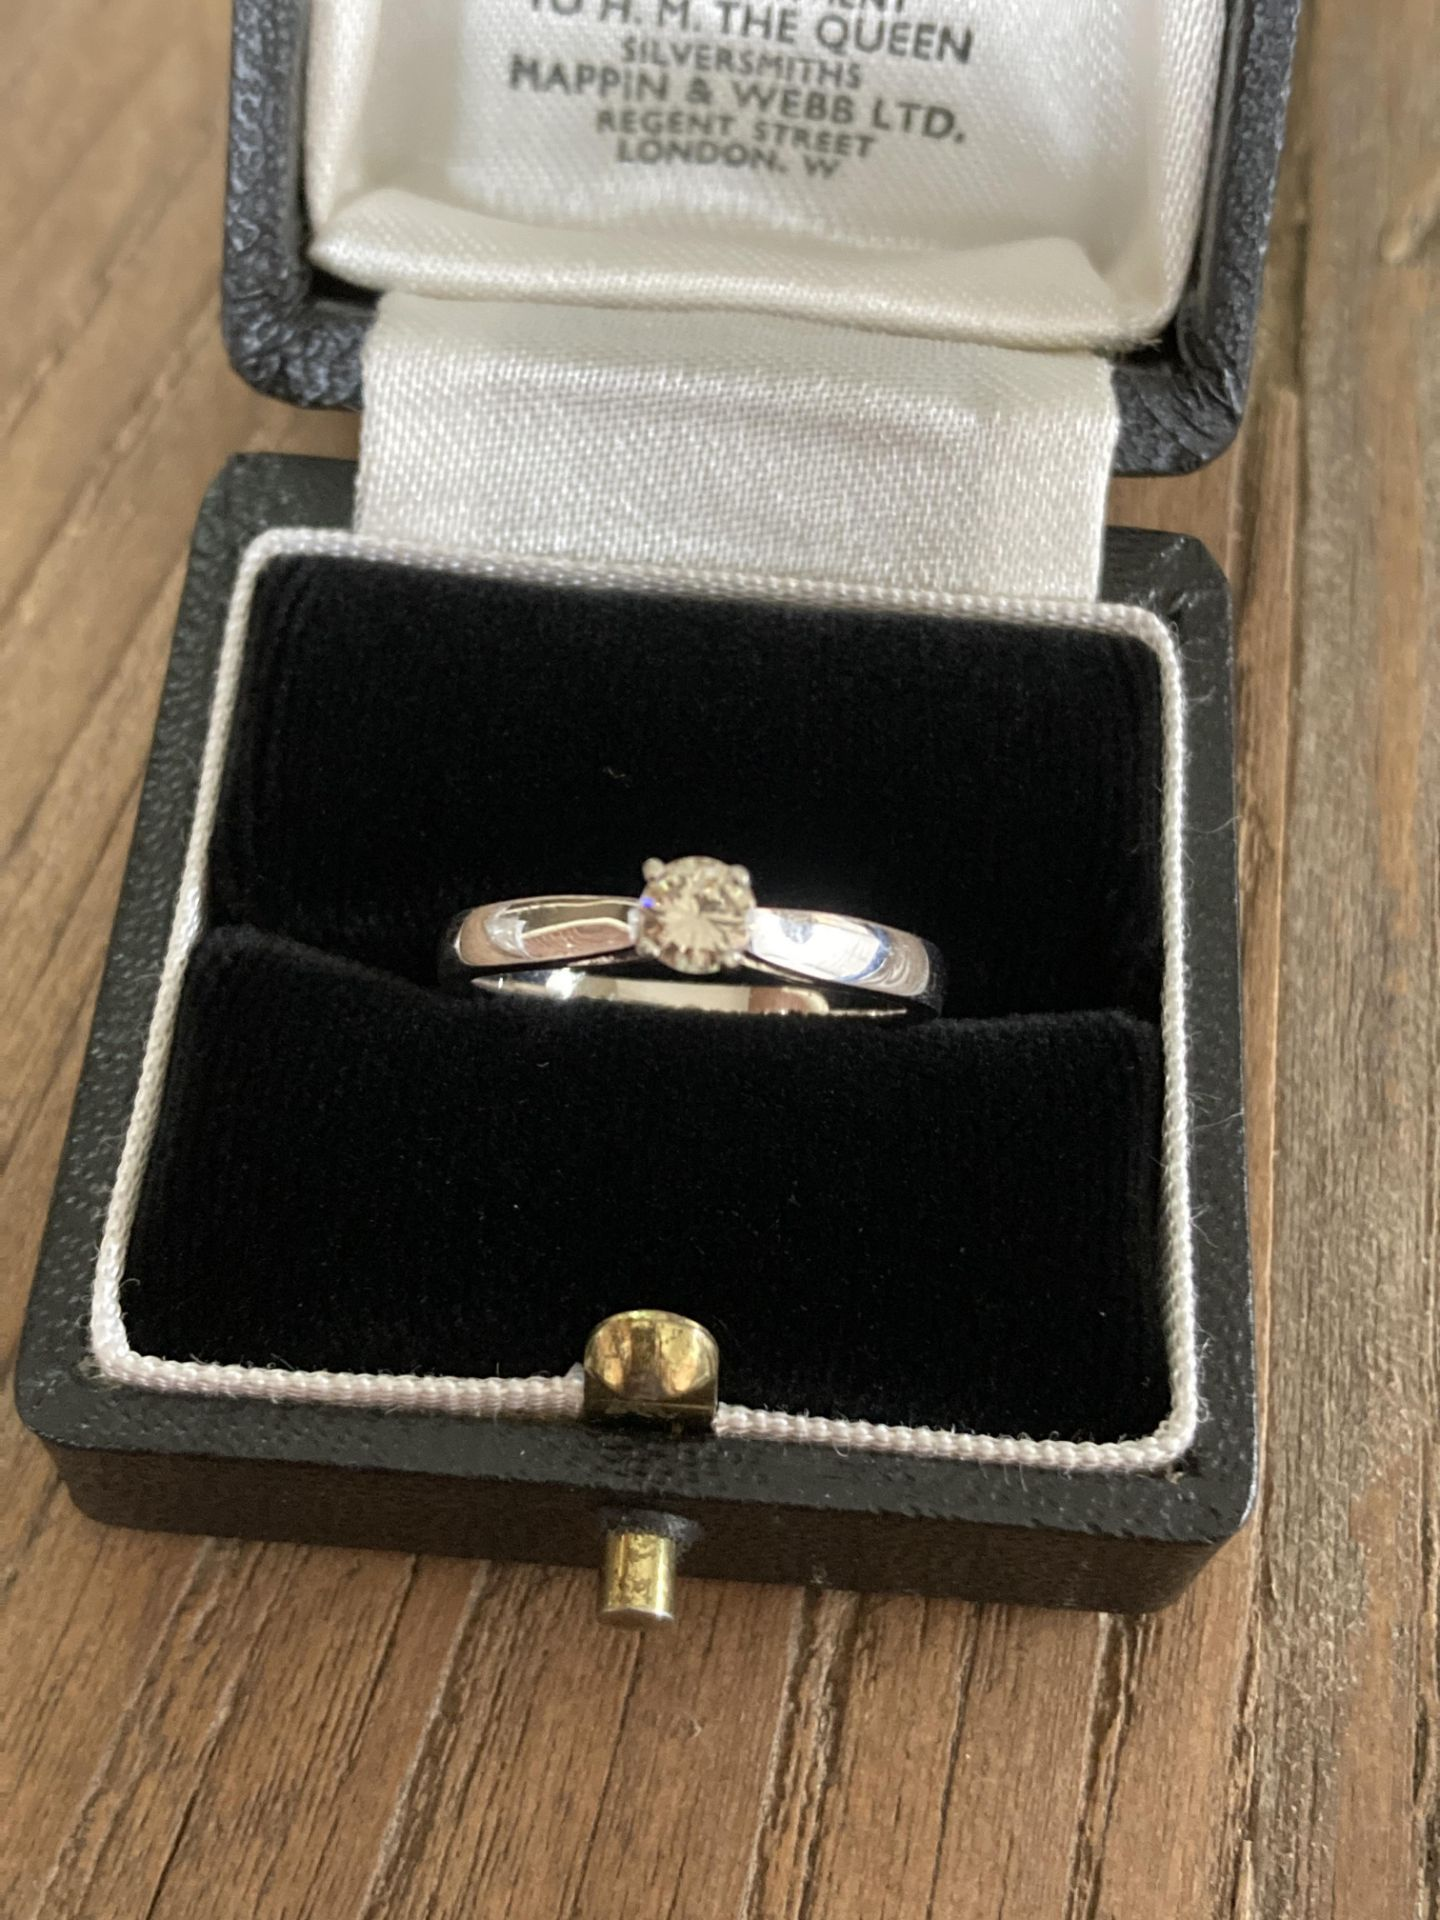 SOLITAIRE DIAMOND RING IN 18CT WHITE GOLD - SIZE: N / WEIGHT: 3.1G